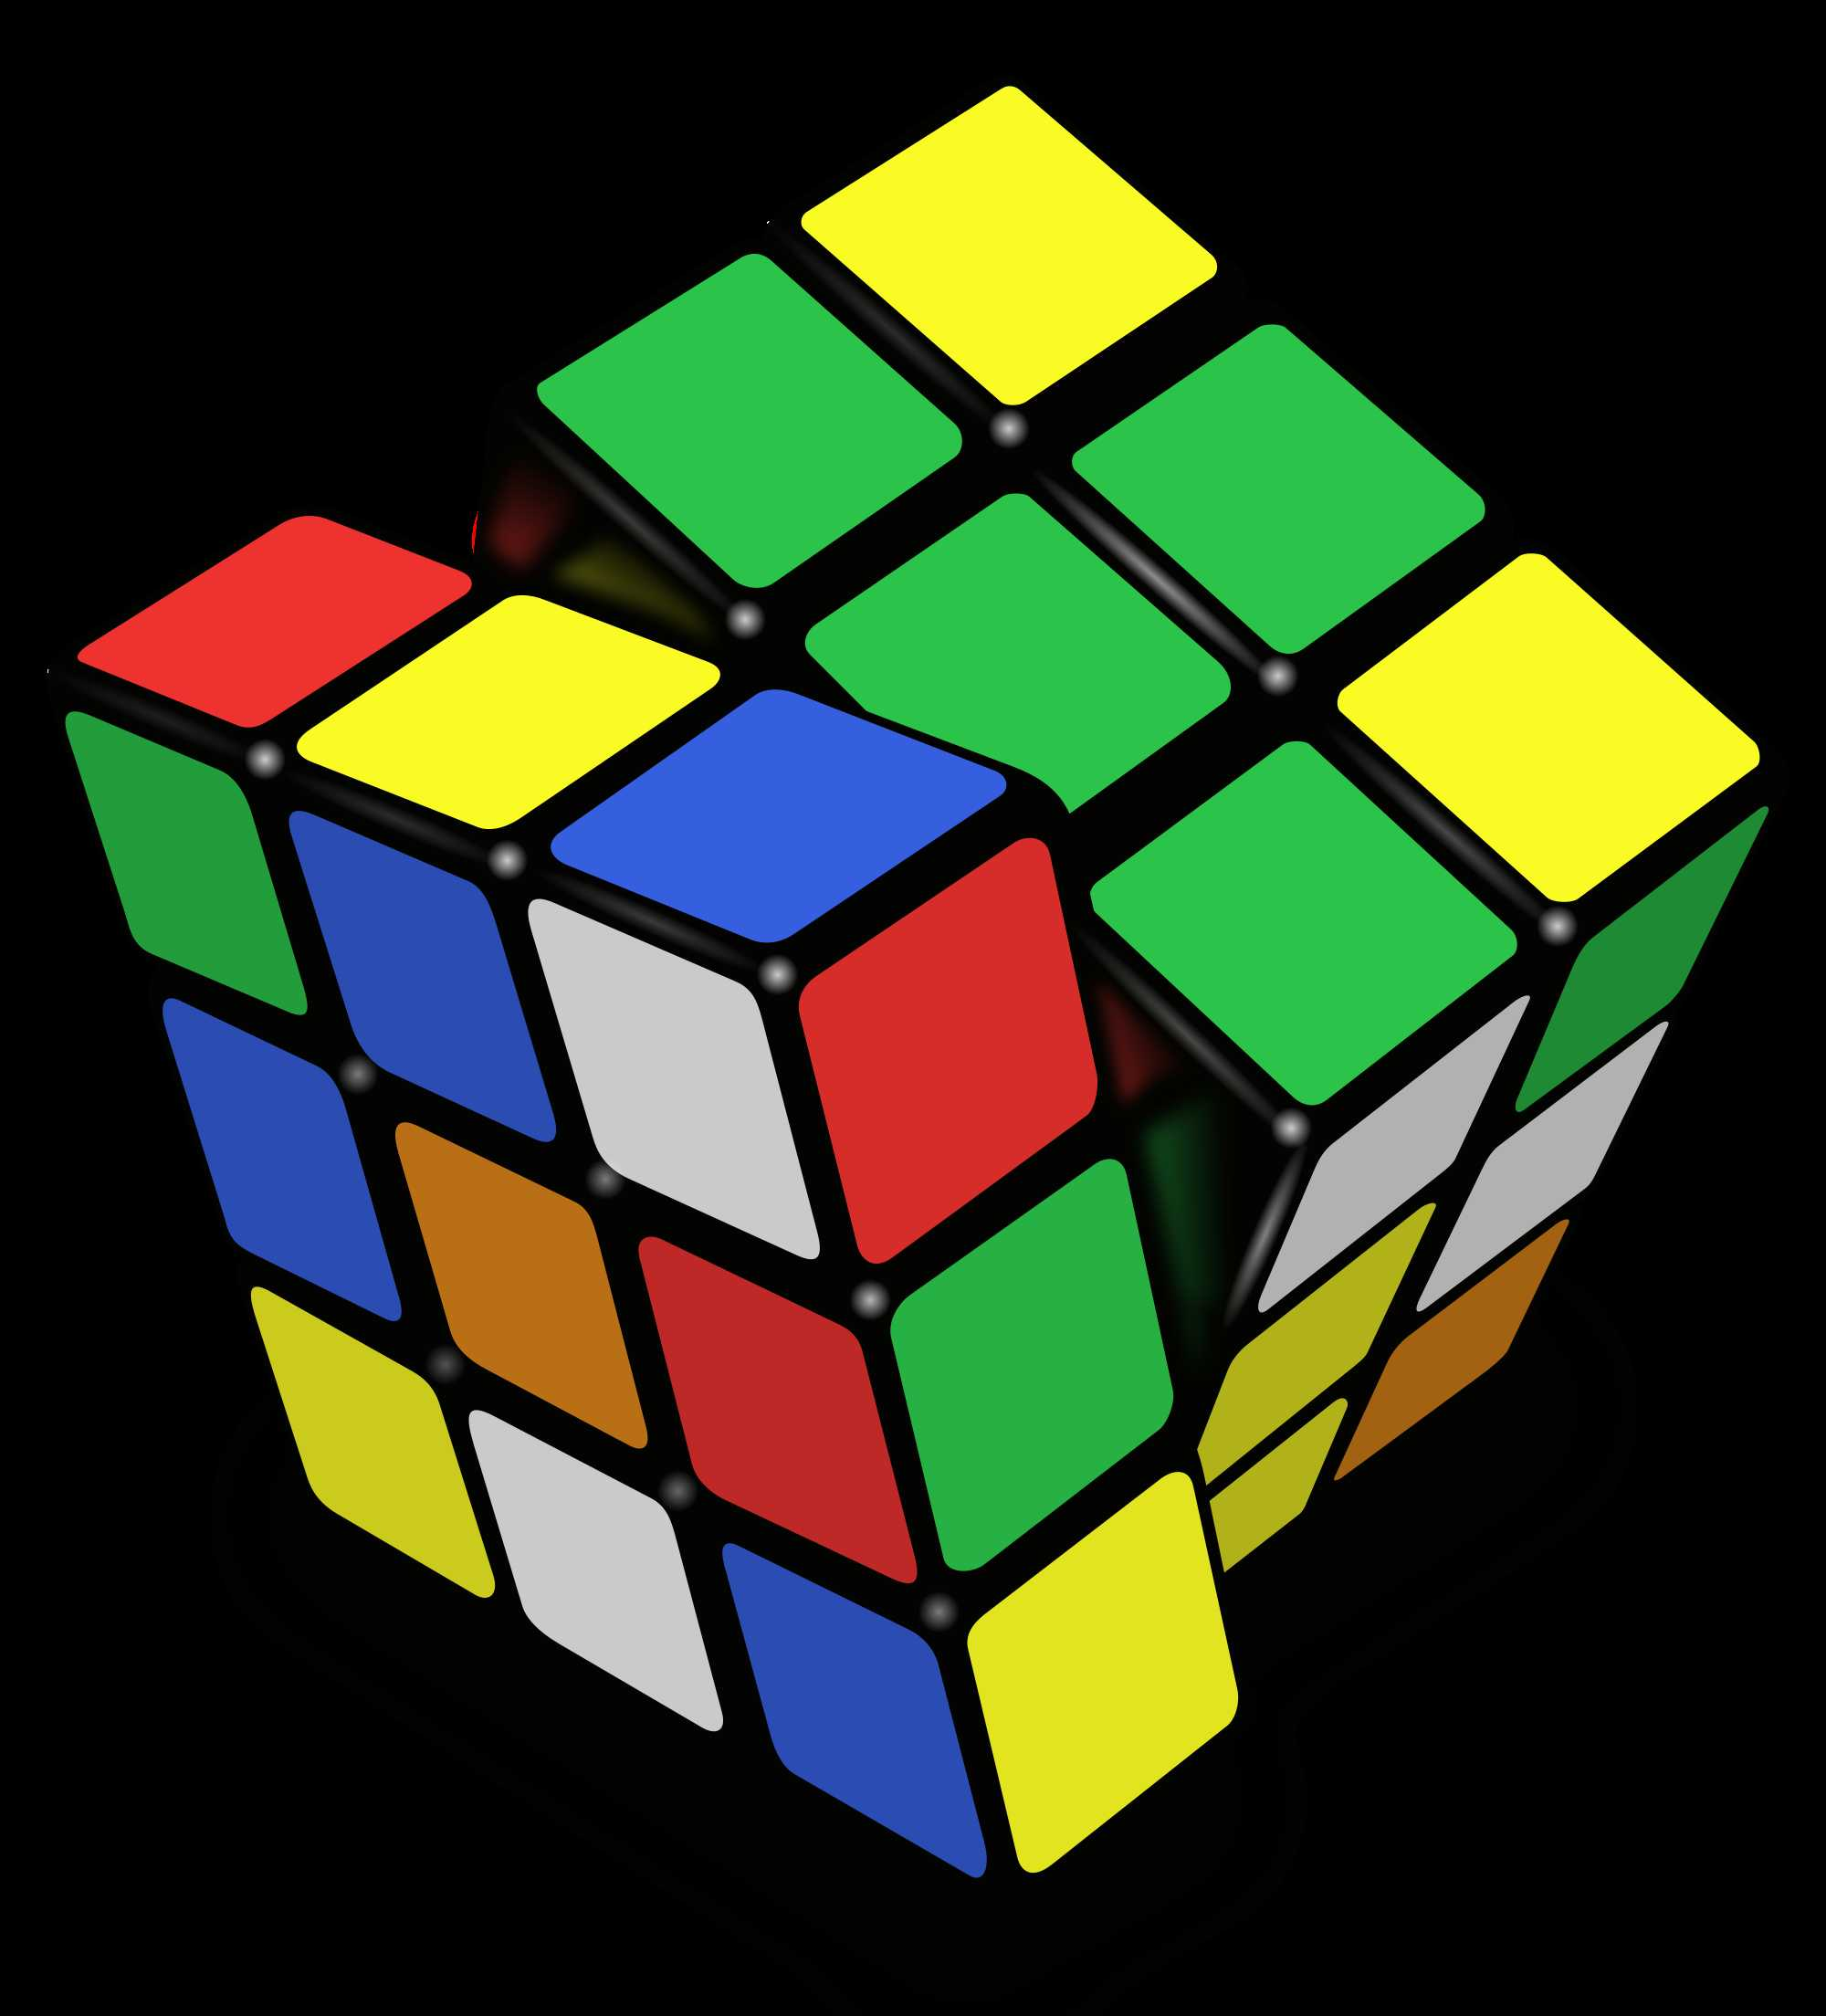 The popular Rubik Cube is one of the awesome 80s toys still popular today